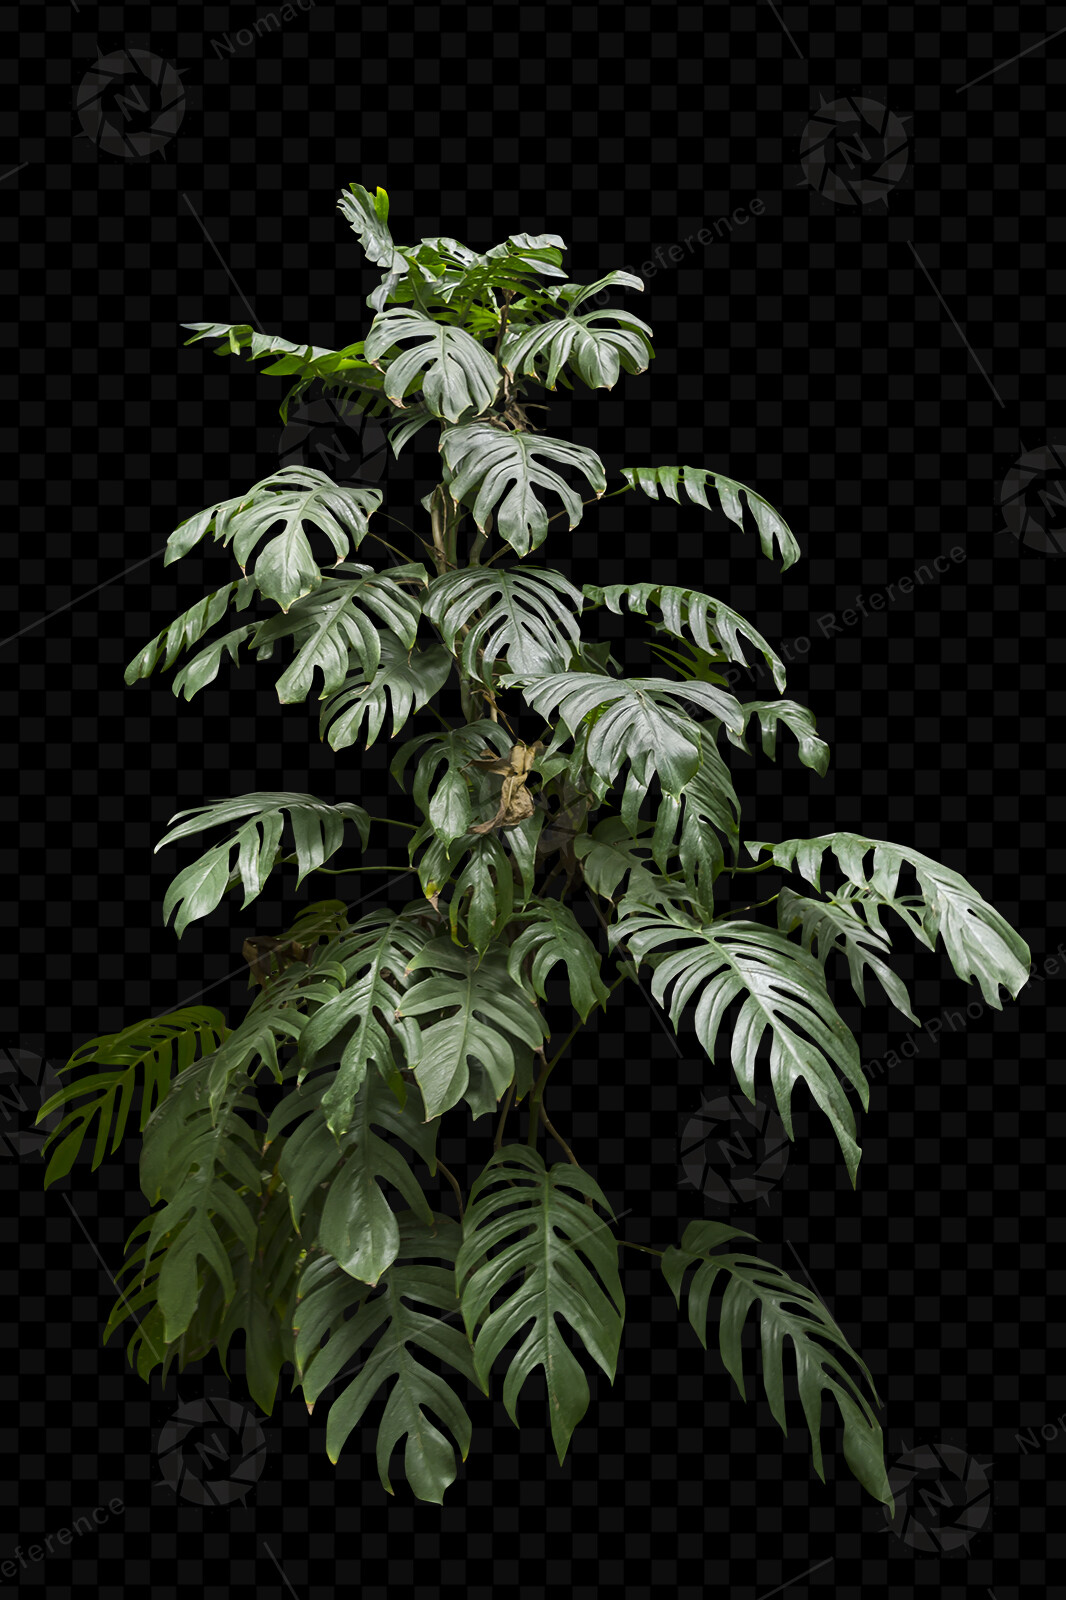 From the PNG Photo Pack: Exotic Trees volume 2  https://www.artstation.com/a/4717987